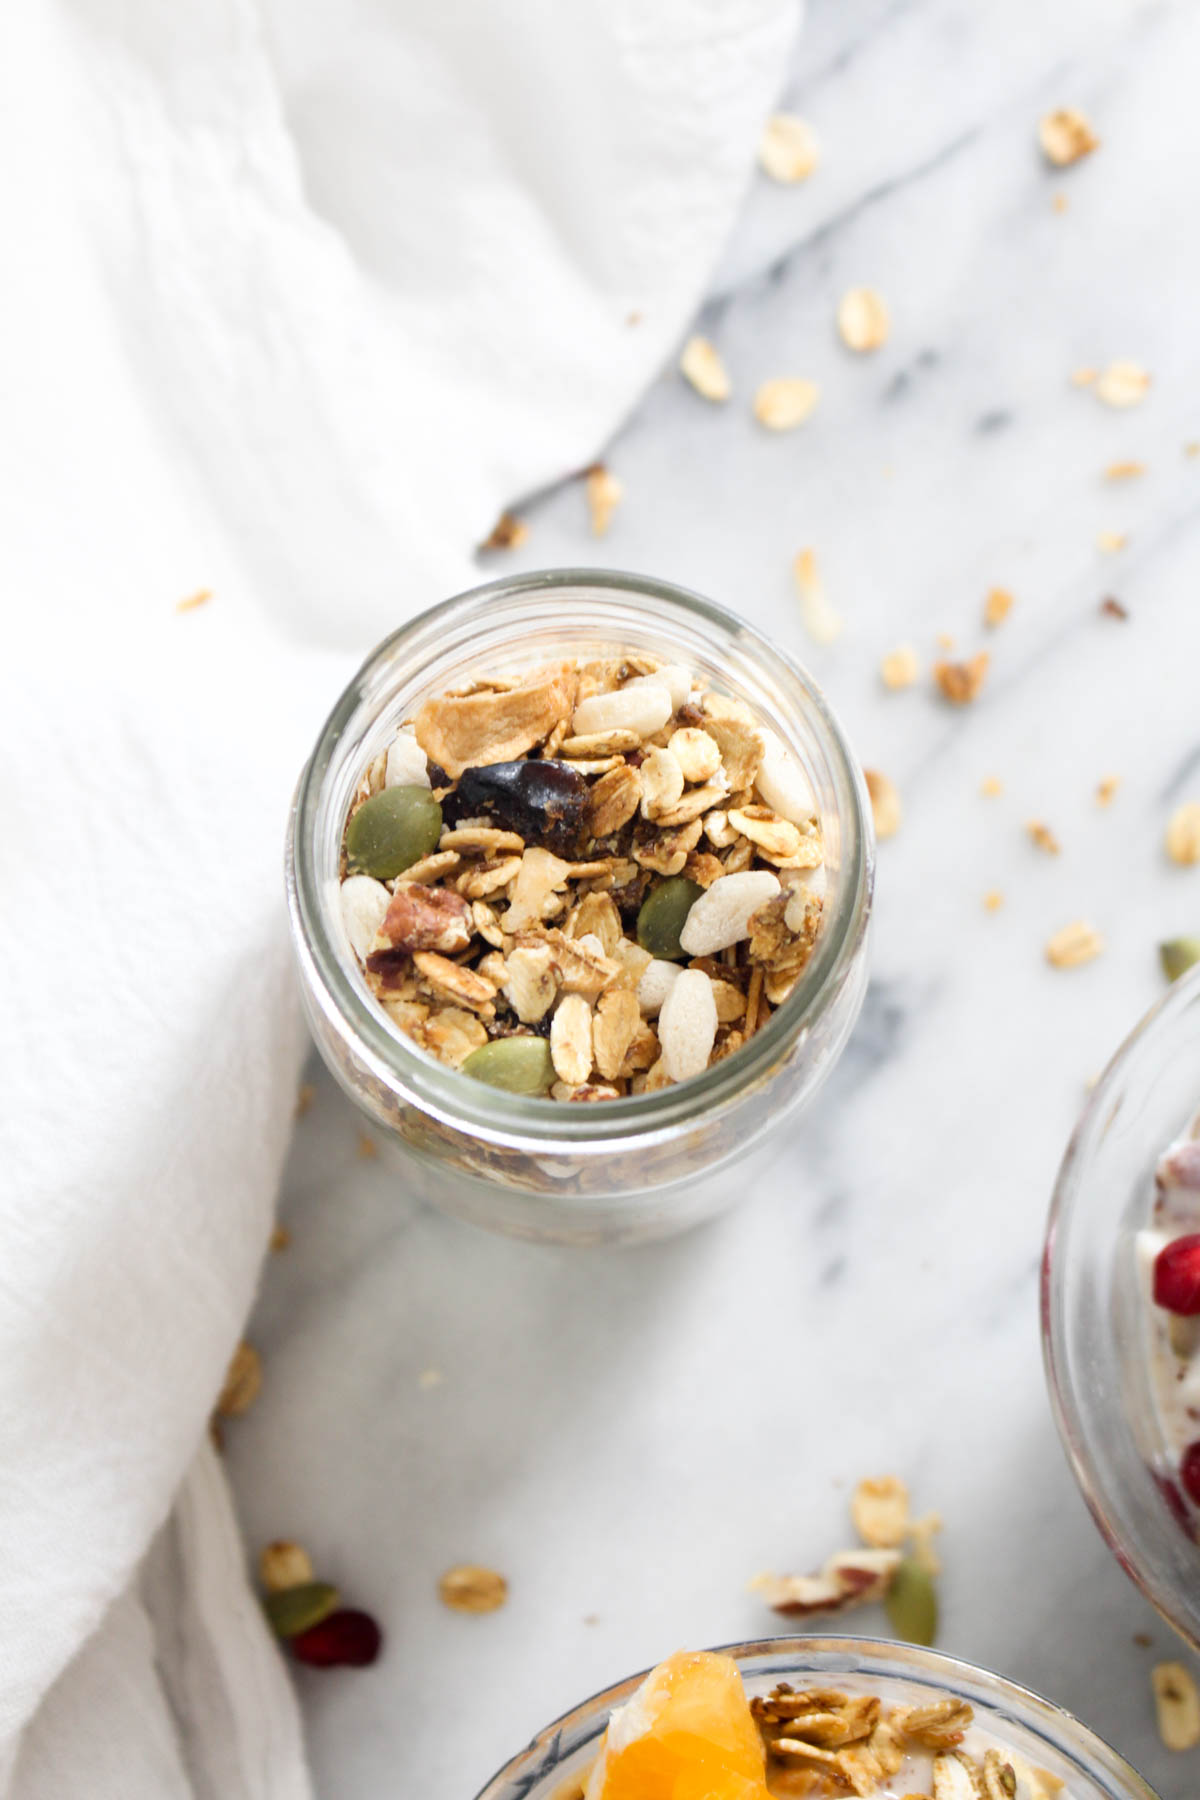 This Winter Fruit Muesli recipe is an easy to make breakfast that is packed with whole grains, healthy fats, and fruit to get you through the morning! This make ahead breakfast recipe is vegan and gluten free. | CatchingSeeds.com